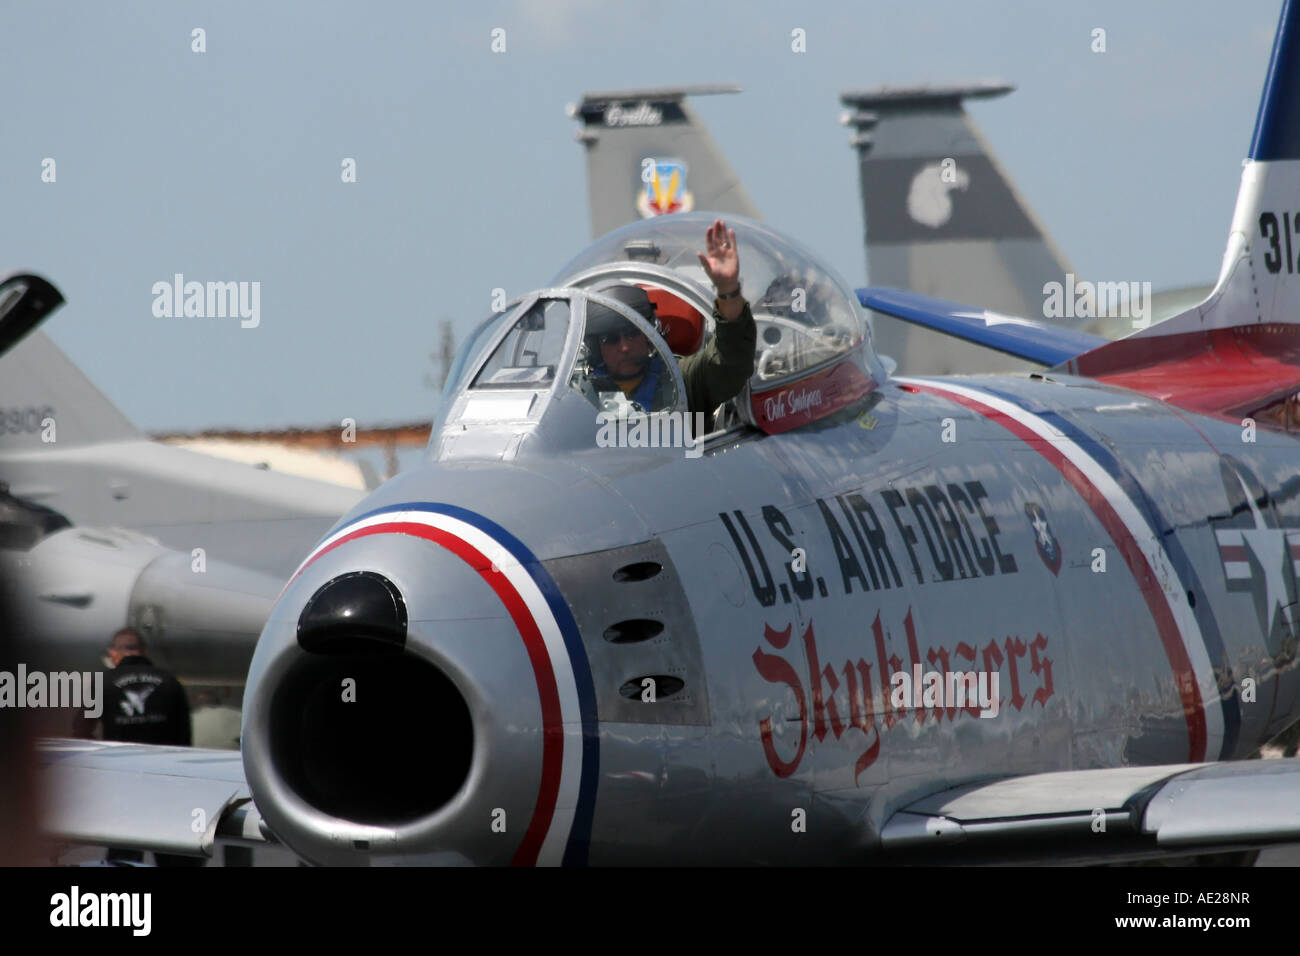 Post World War II Era USAF F-86F Sabre Skyblazers Jet Plane at the 2007 MacDill Air Fest in Tampa Florida USA - Stock Image